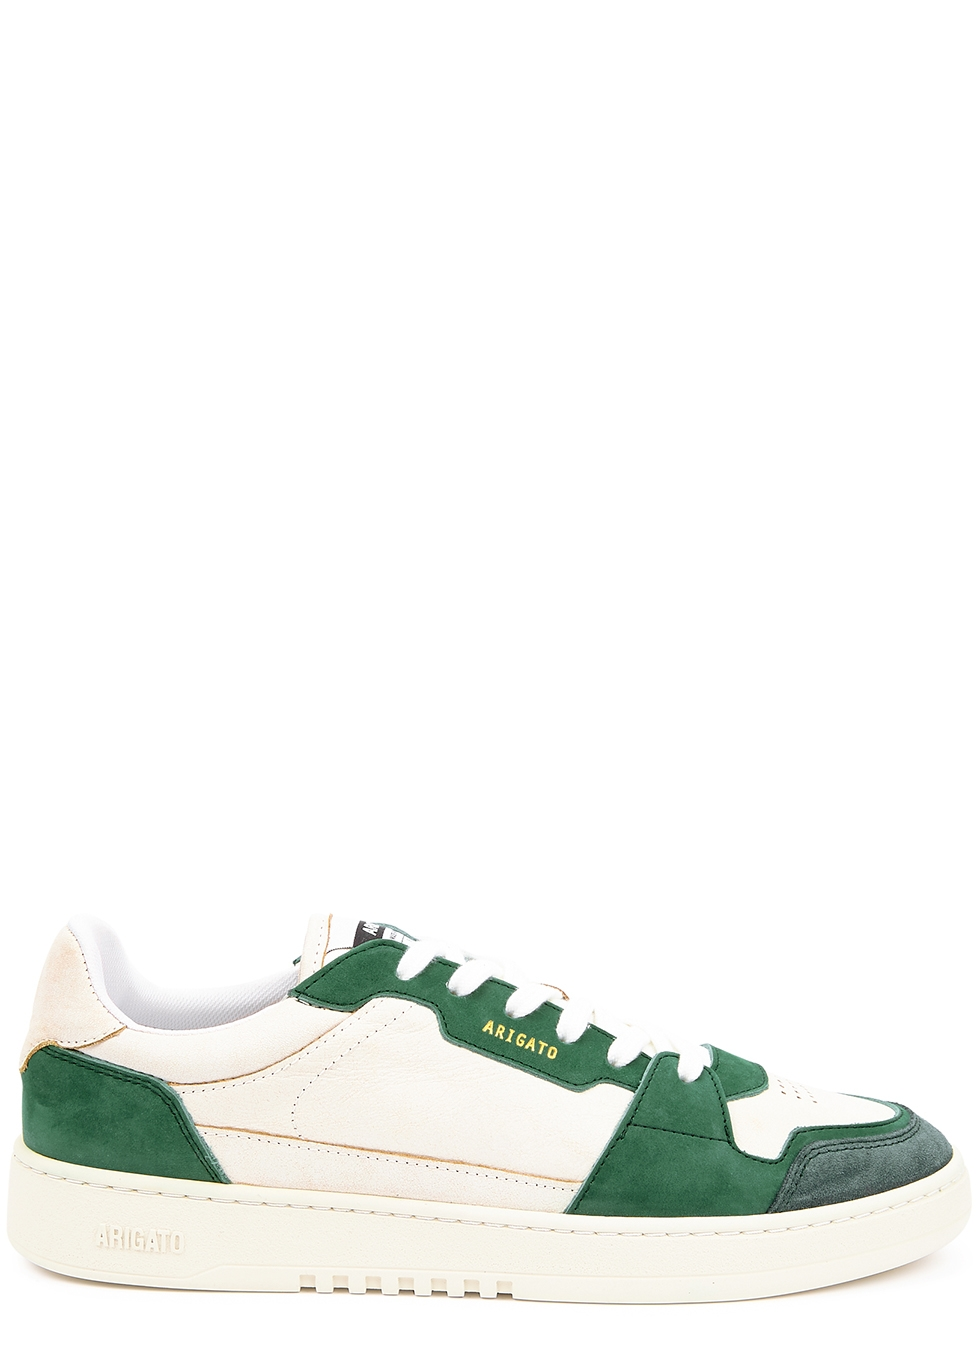 Ace off-white panelled sneakers